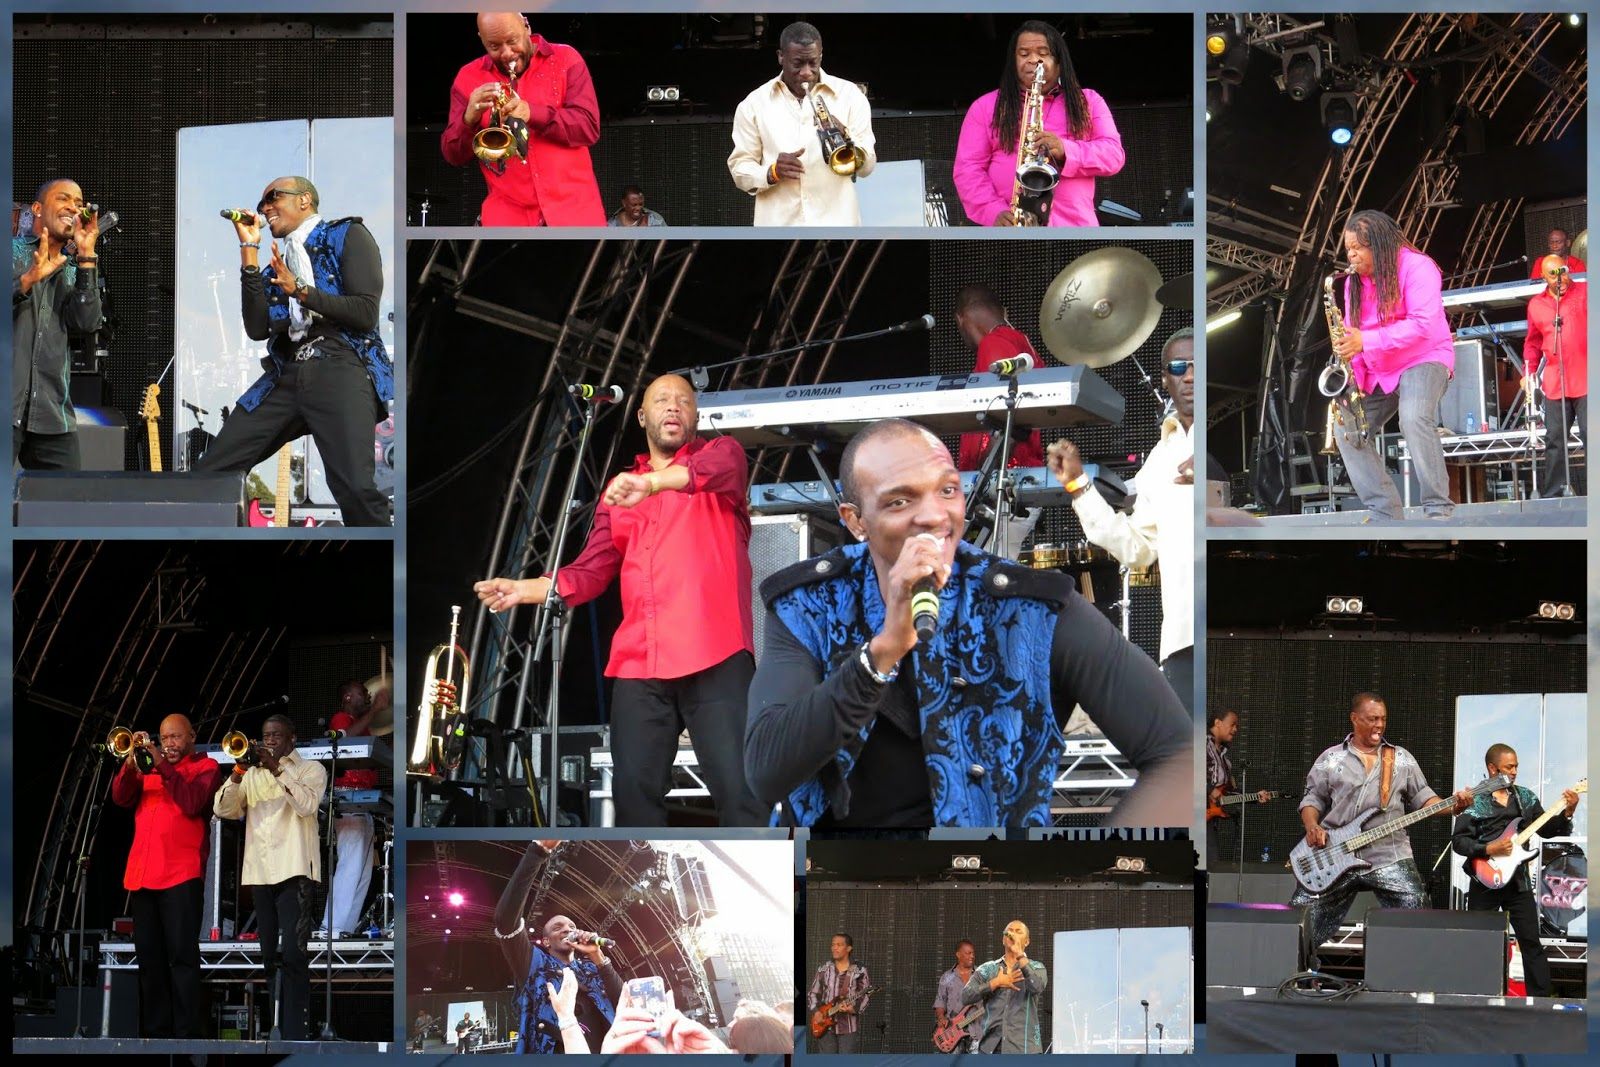 Westport Festival - Kool and the Gang